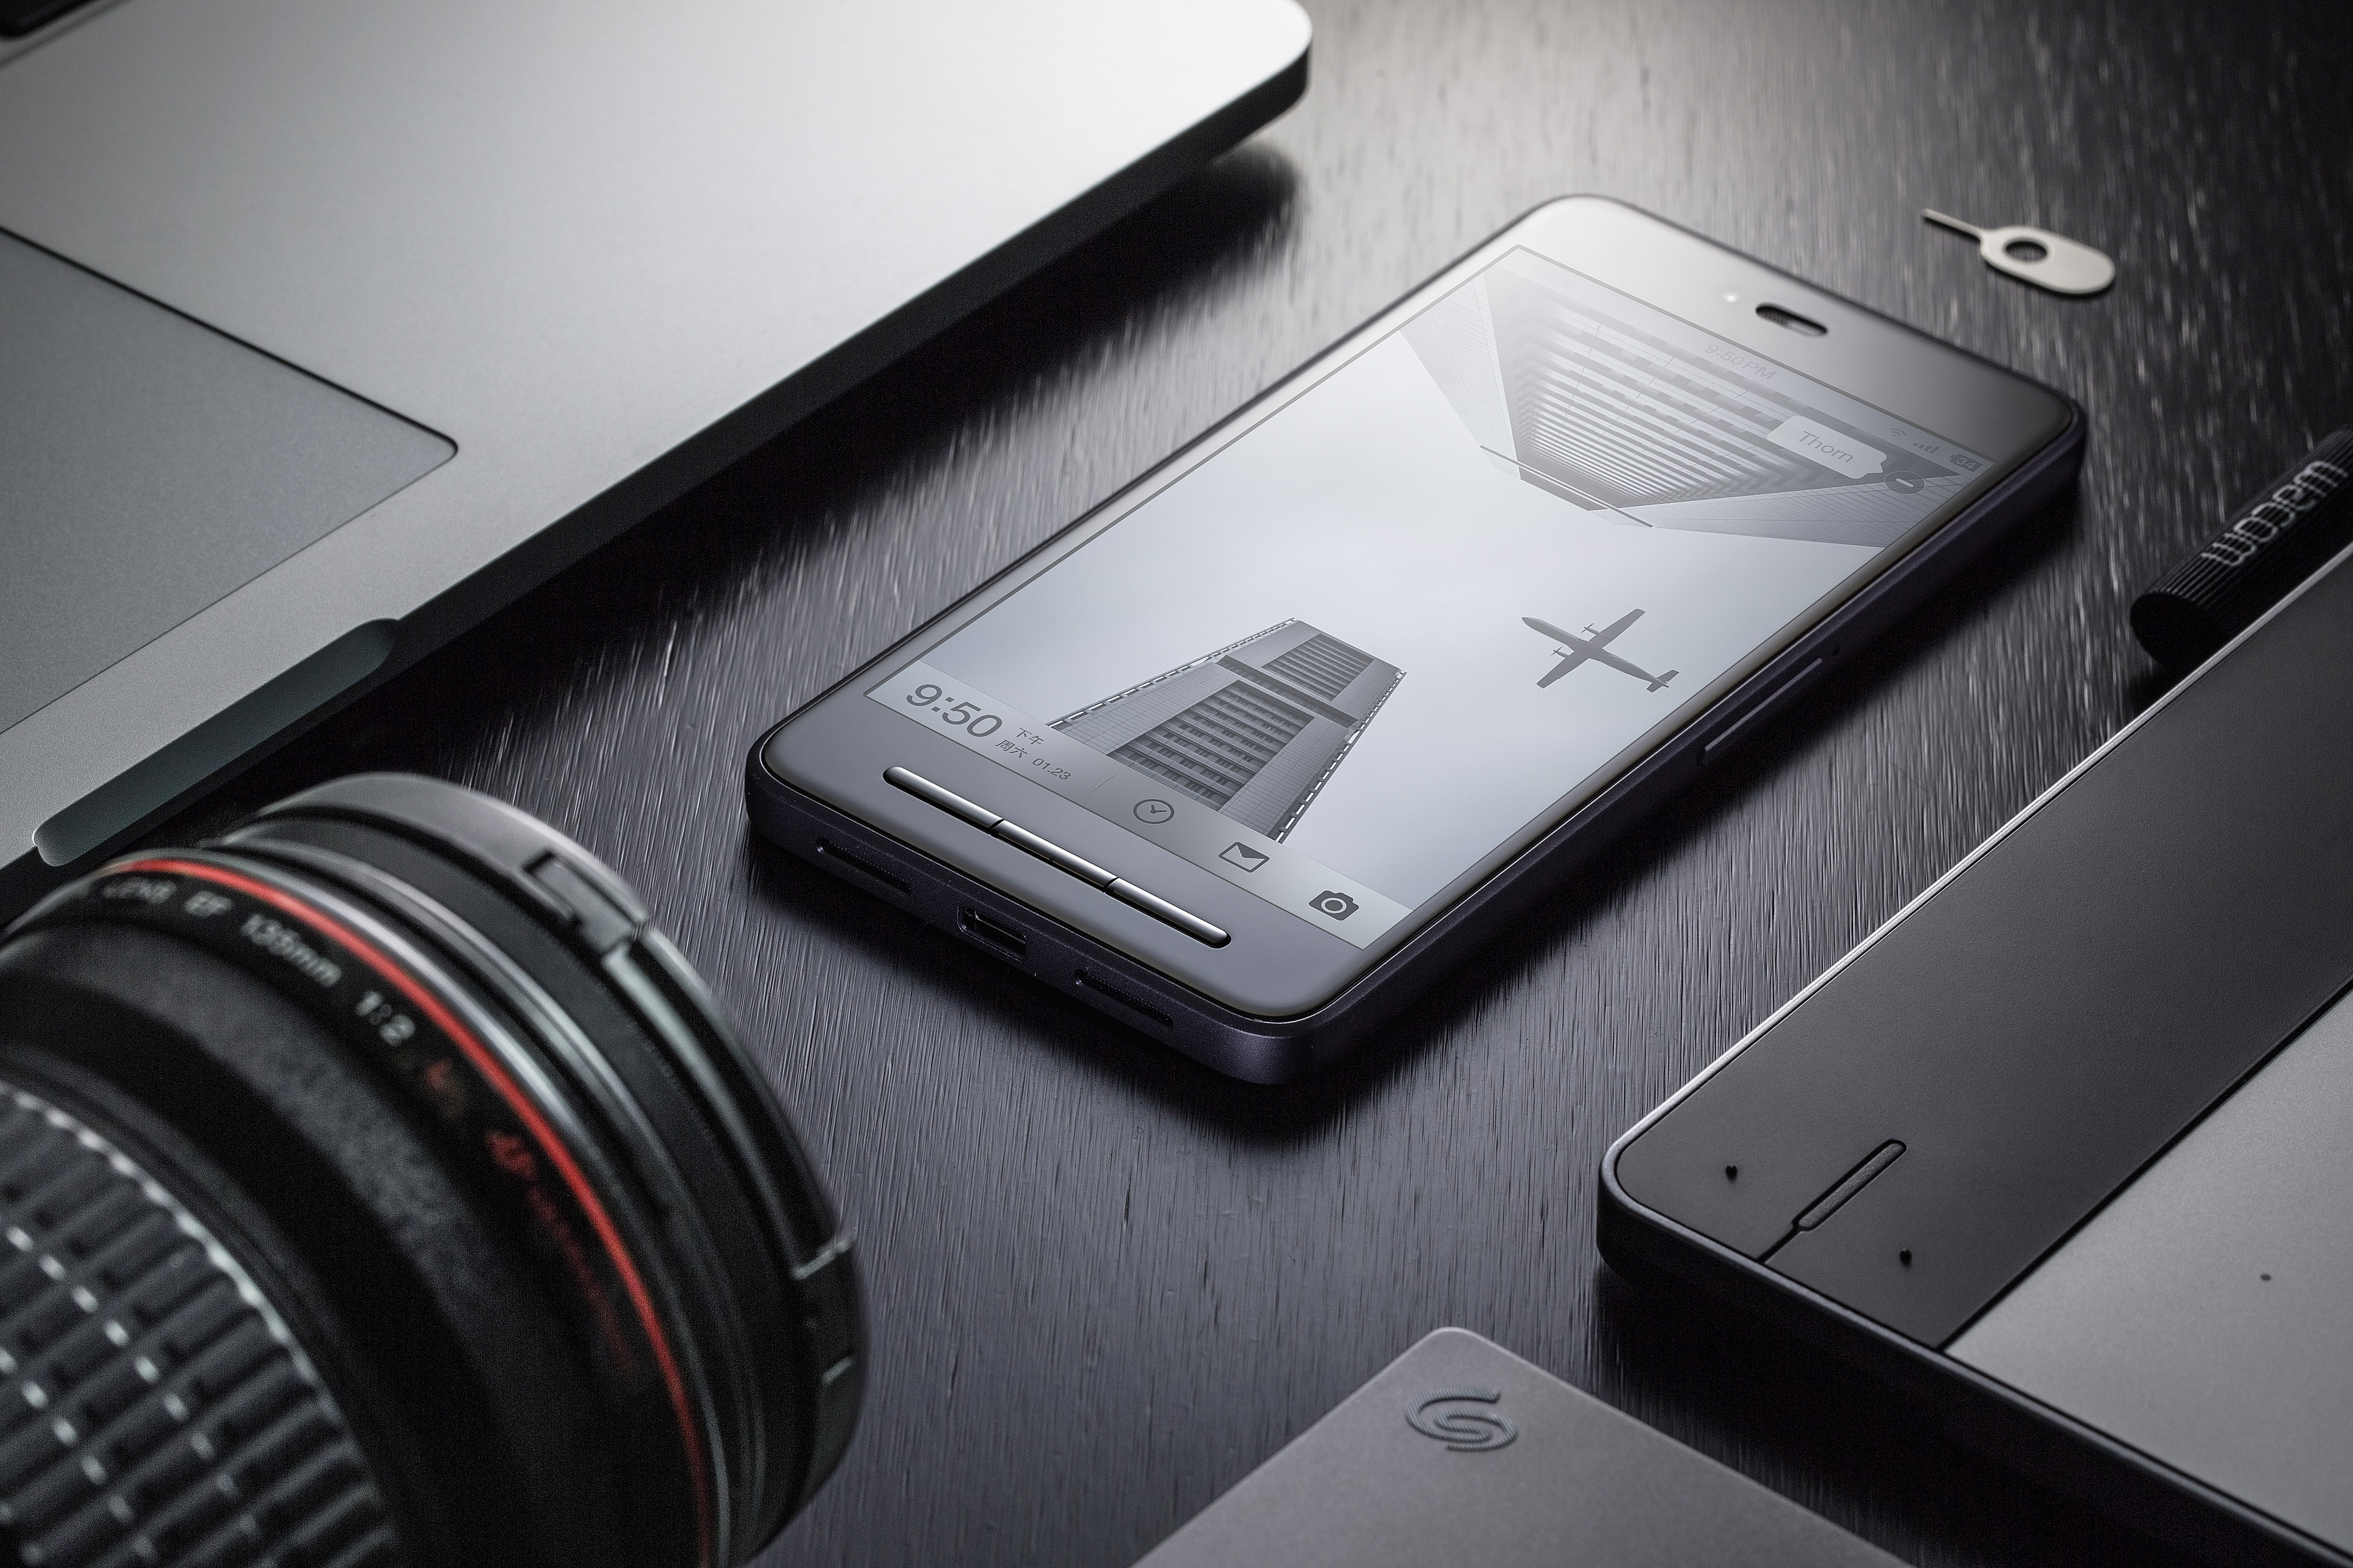 Black Android Smartphone on Black Surface, Black-and-white, Computer, Devices, Display, HQ Photo